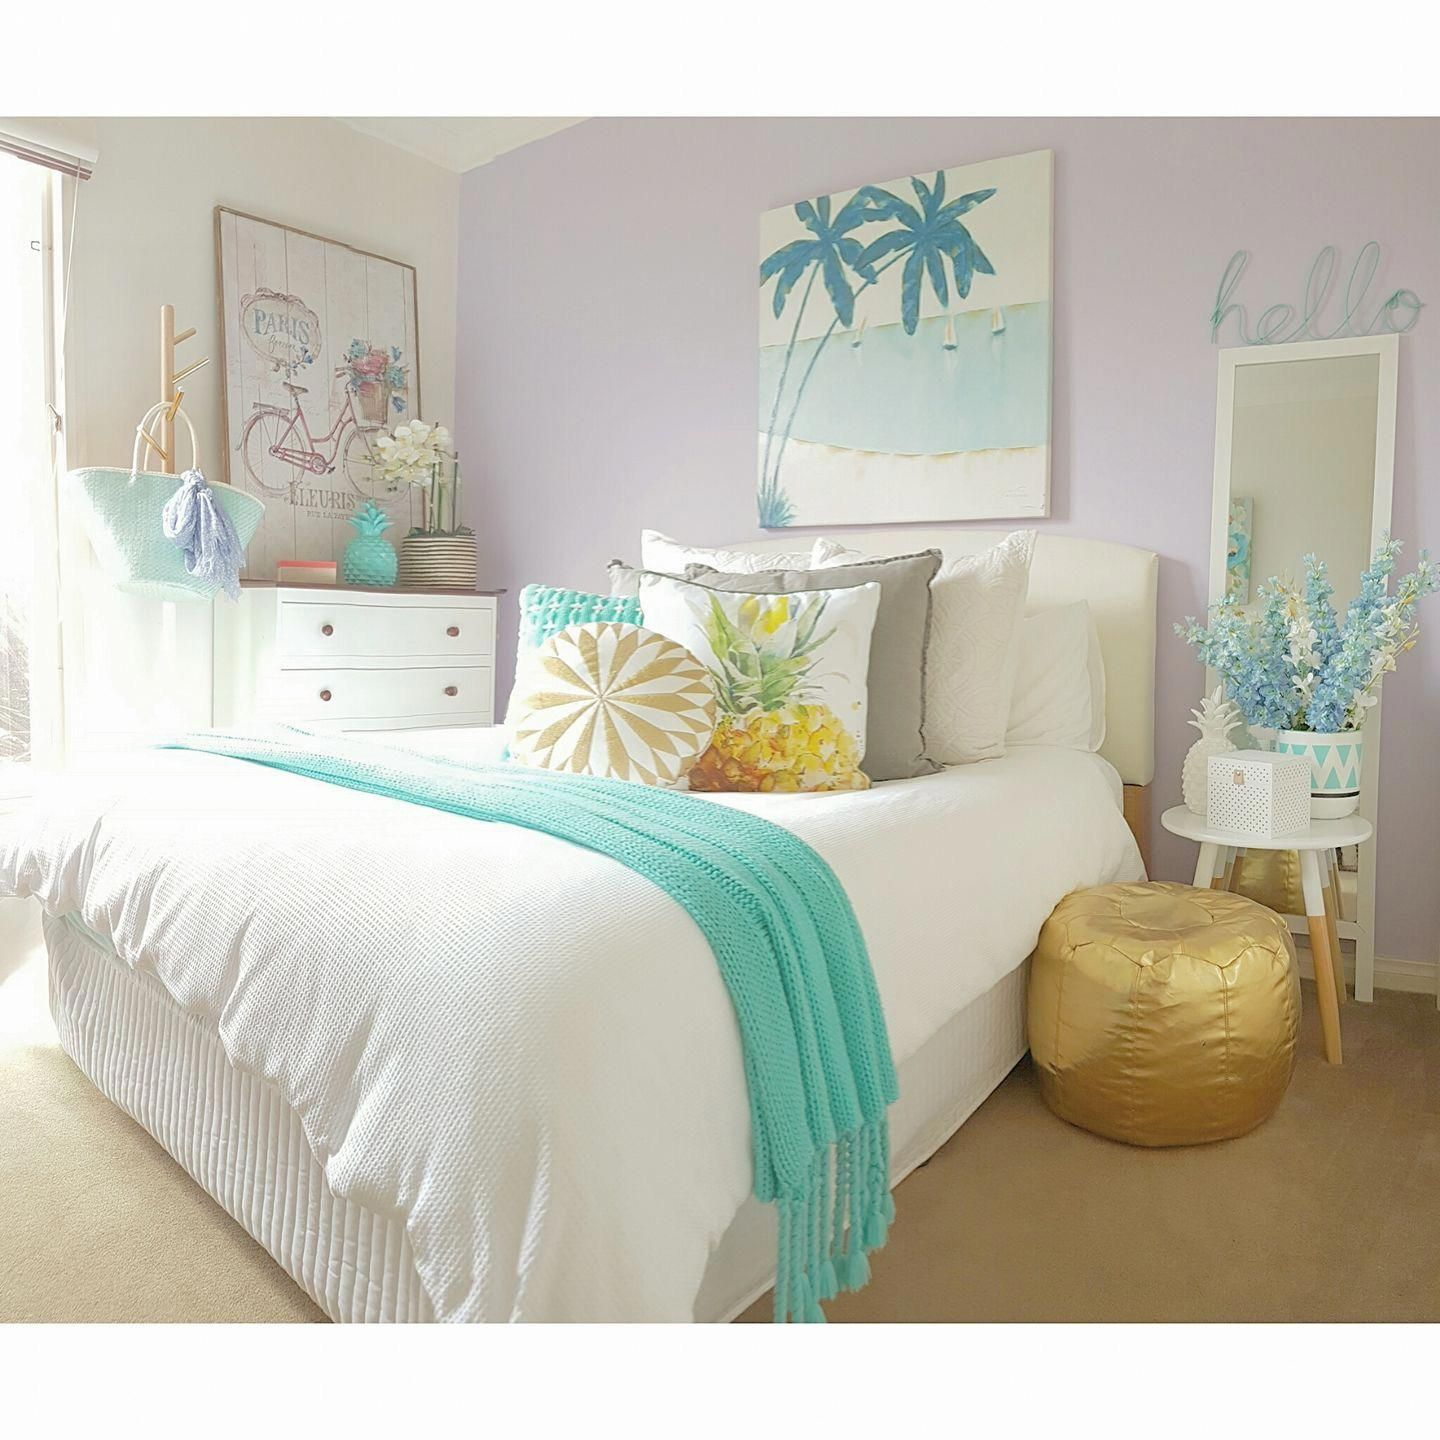 kmart teen girls bedroom featuring kmart white waffle quilt cover rh pinterest com